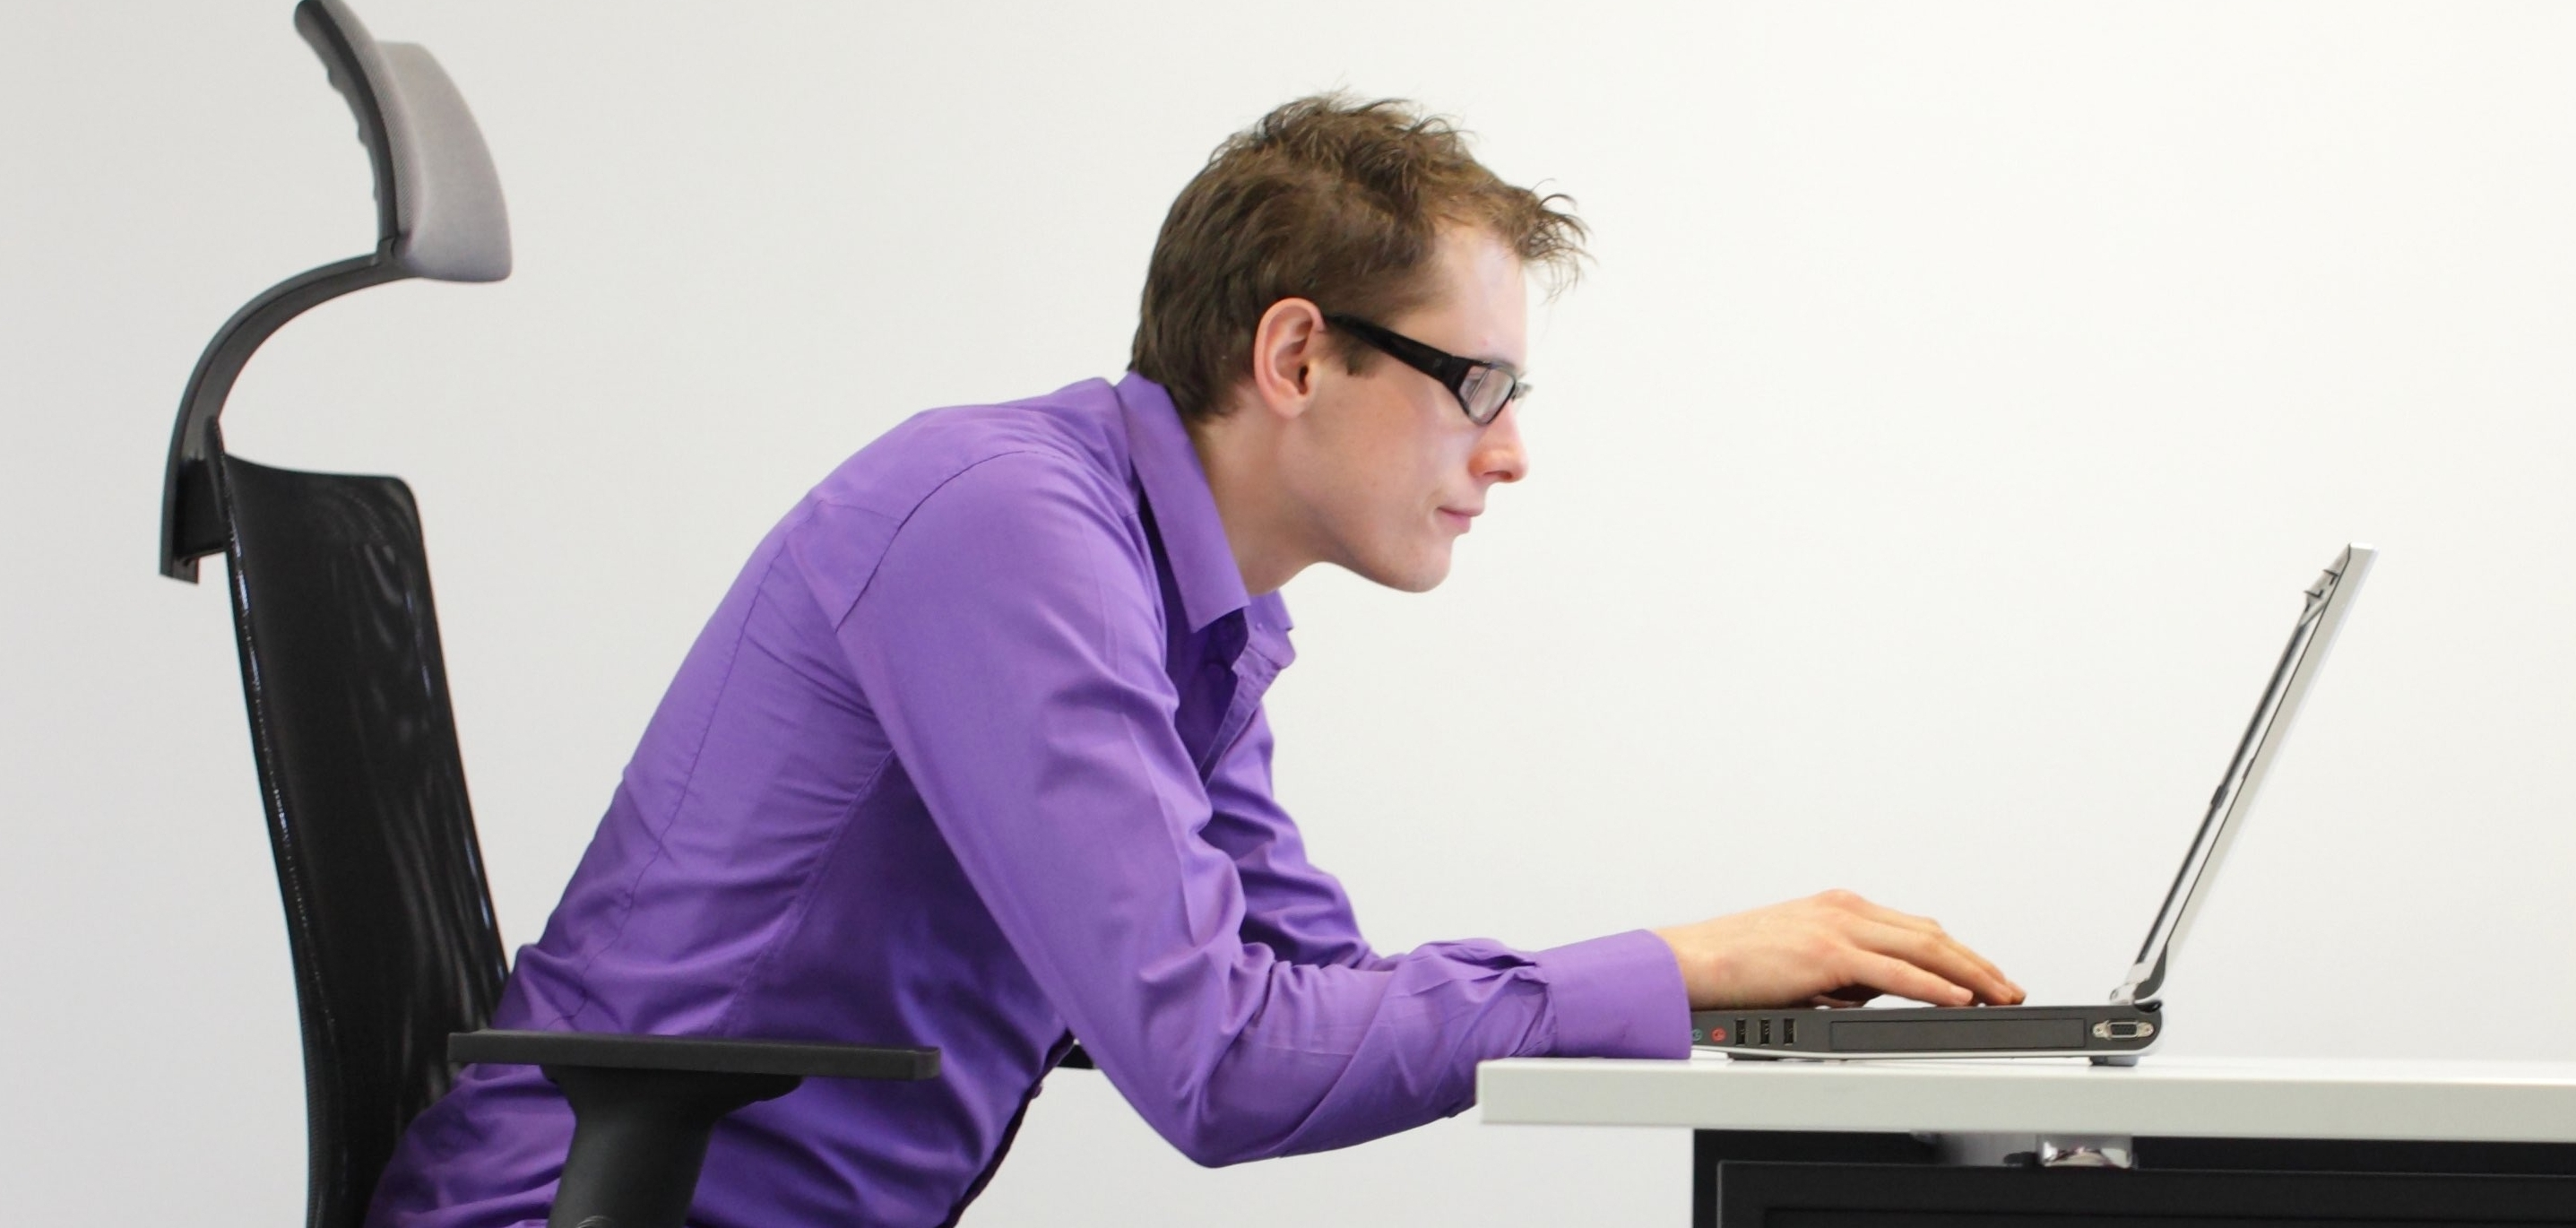 bad-posture-at-work-MID-RES-e1459399554120